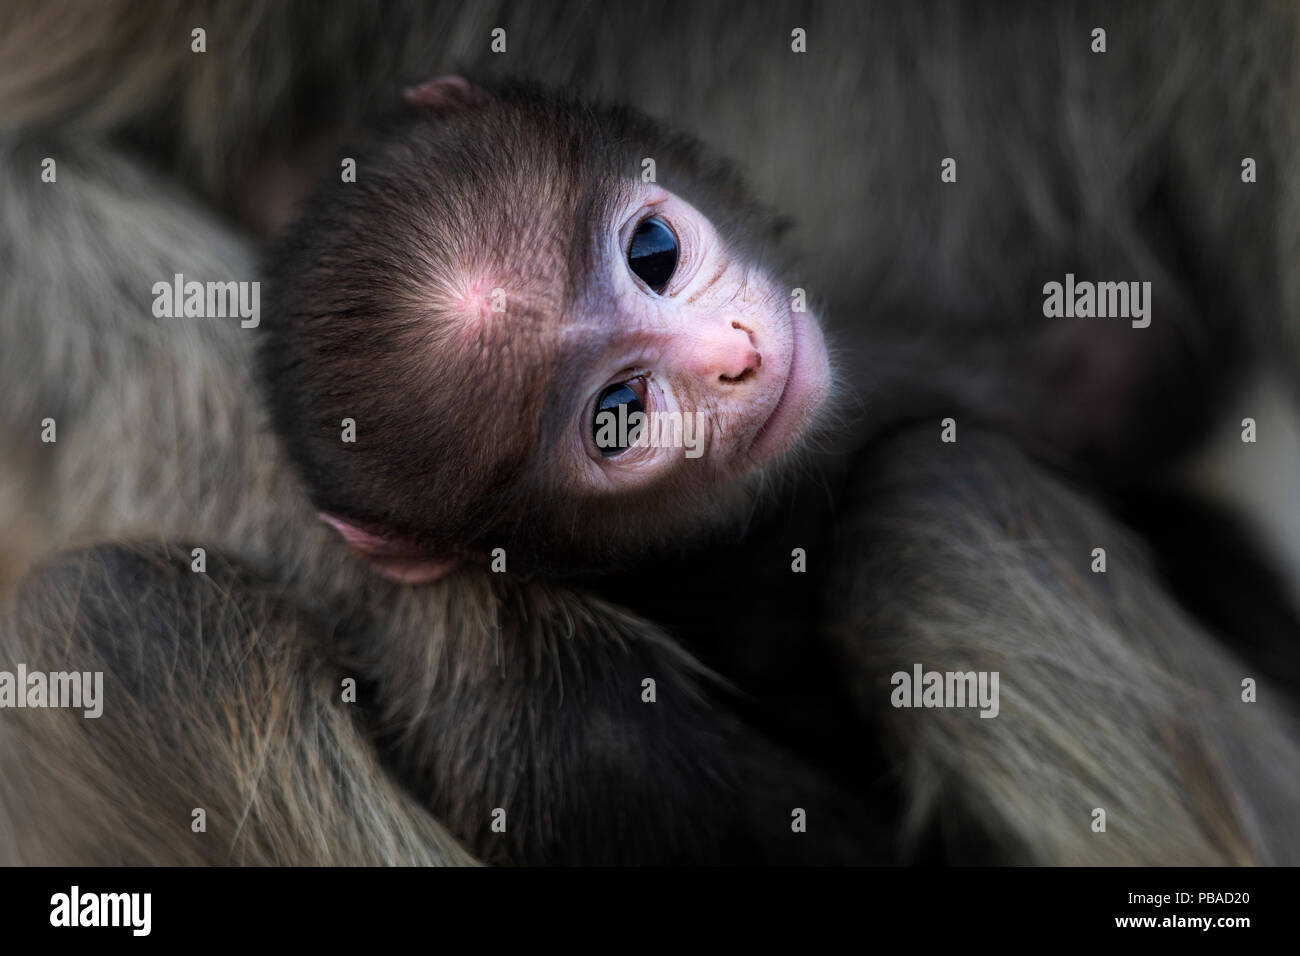 Southern plains grey langur / Hanuman langur (Semnopithecus dussumieri) infant aged a few days being held by its mother . Jodhpur, Rajasthan, India. March. - Stock Image